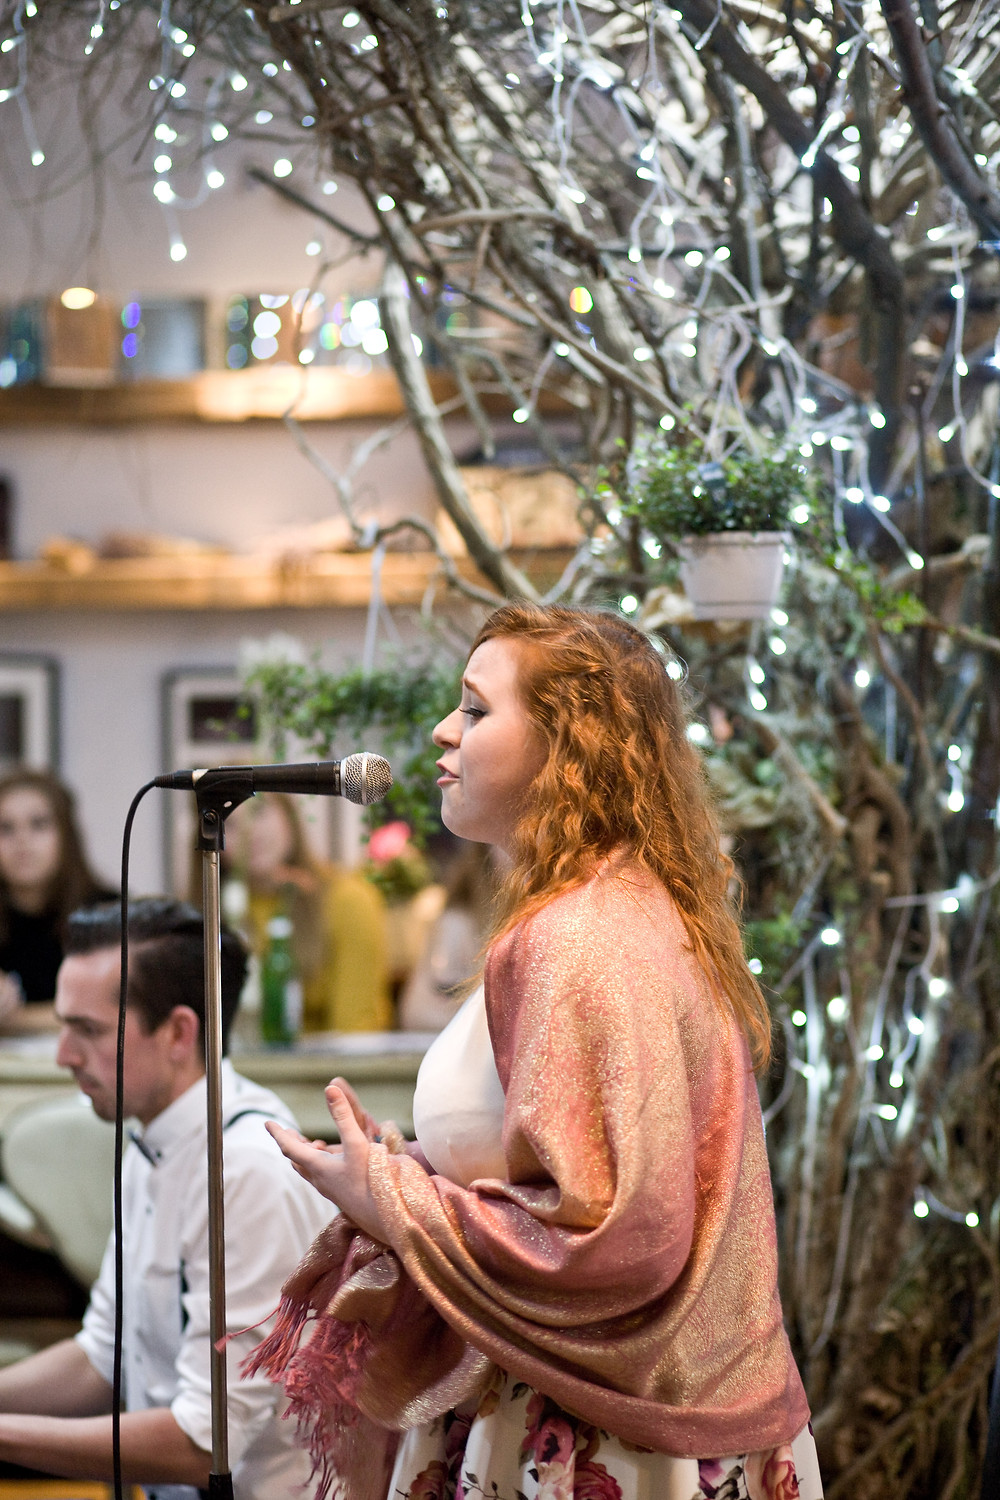 Cardiff event photography at Sunflower & I for 'Hello Cabaret'